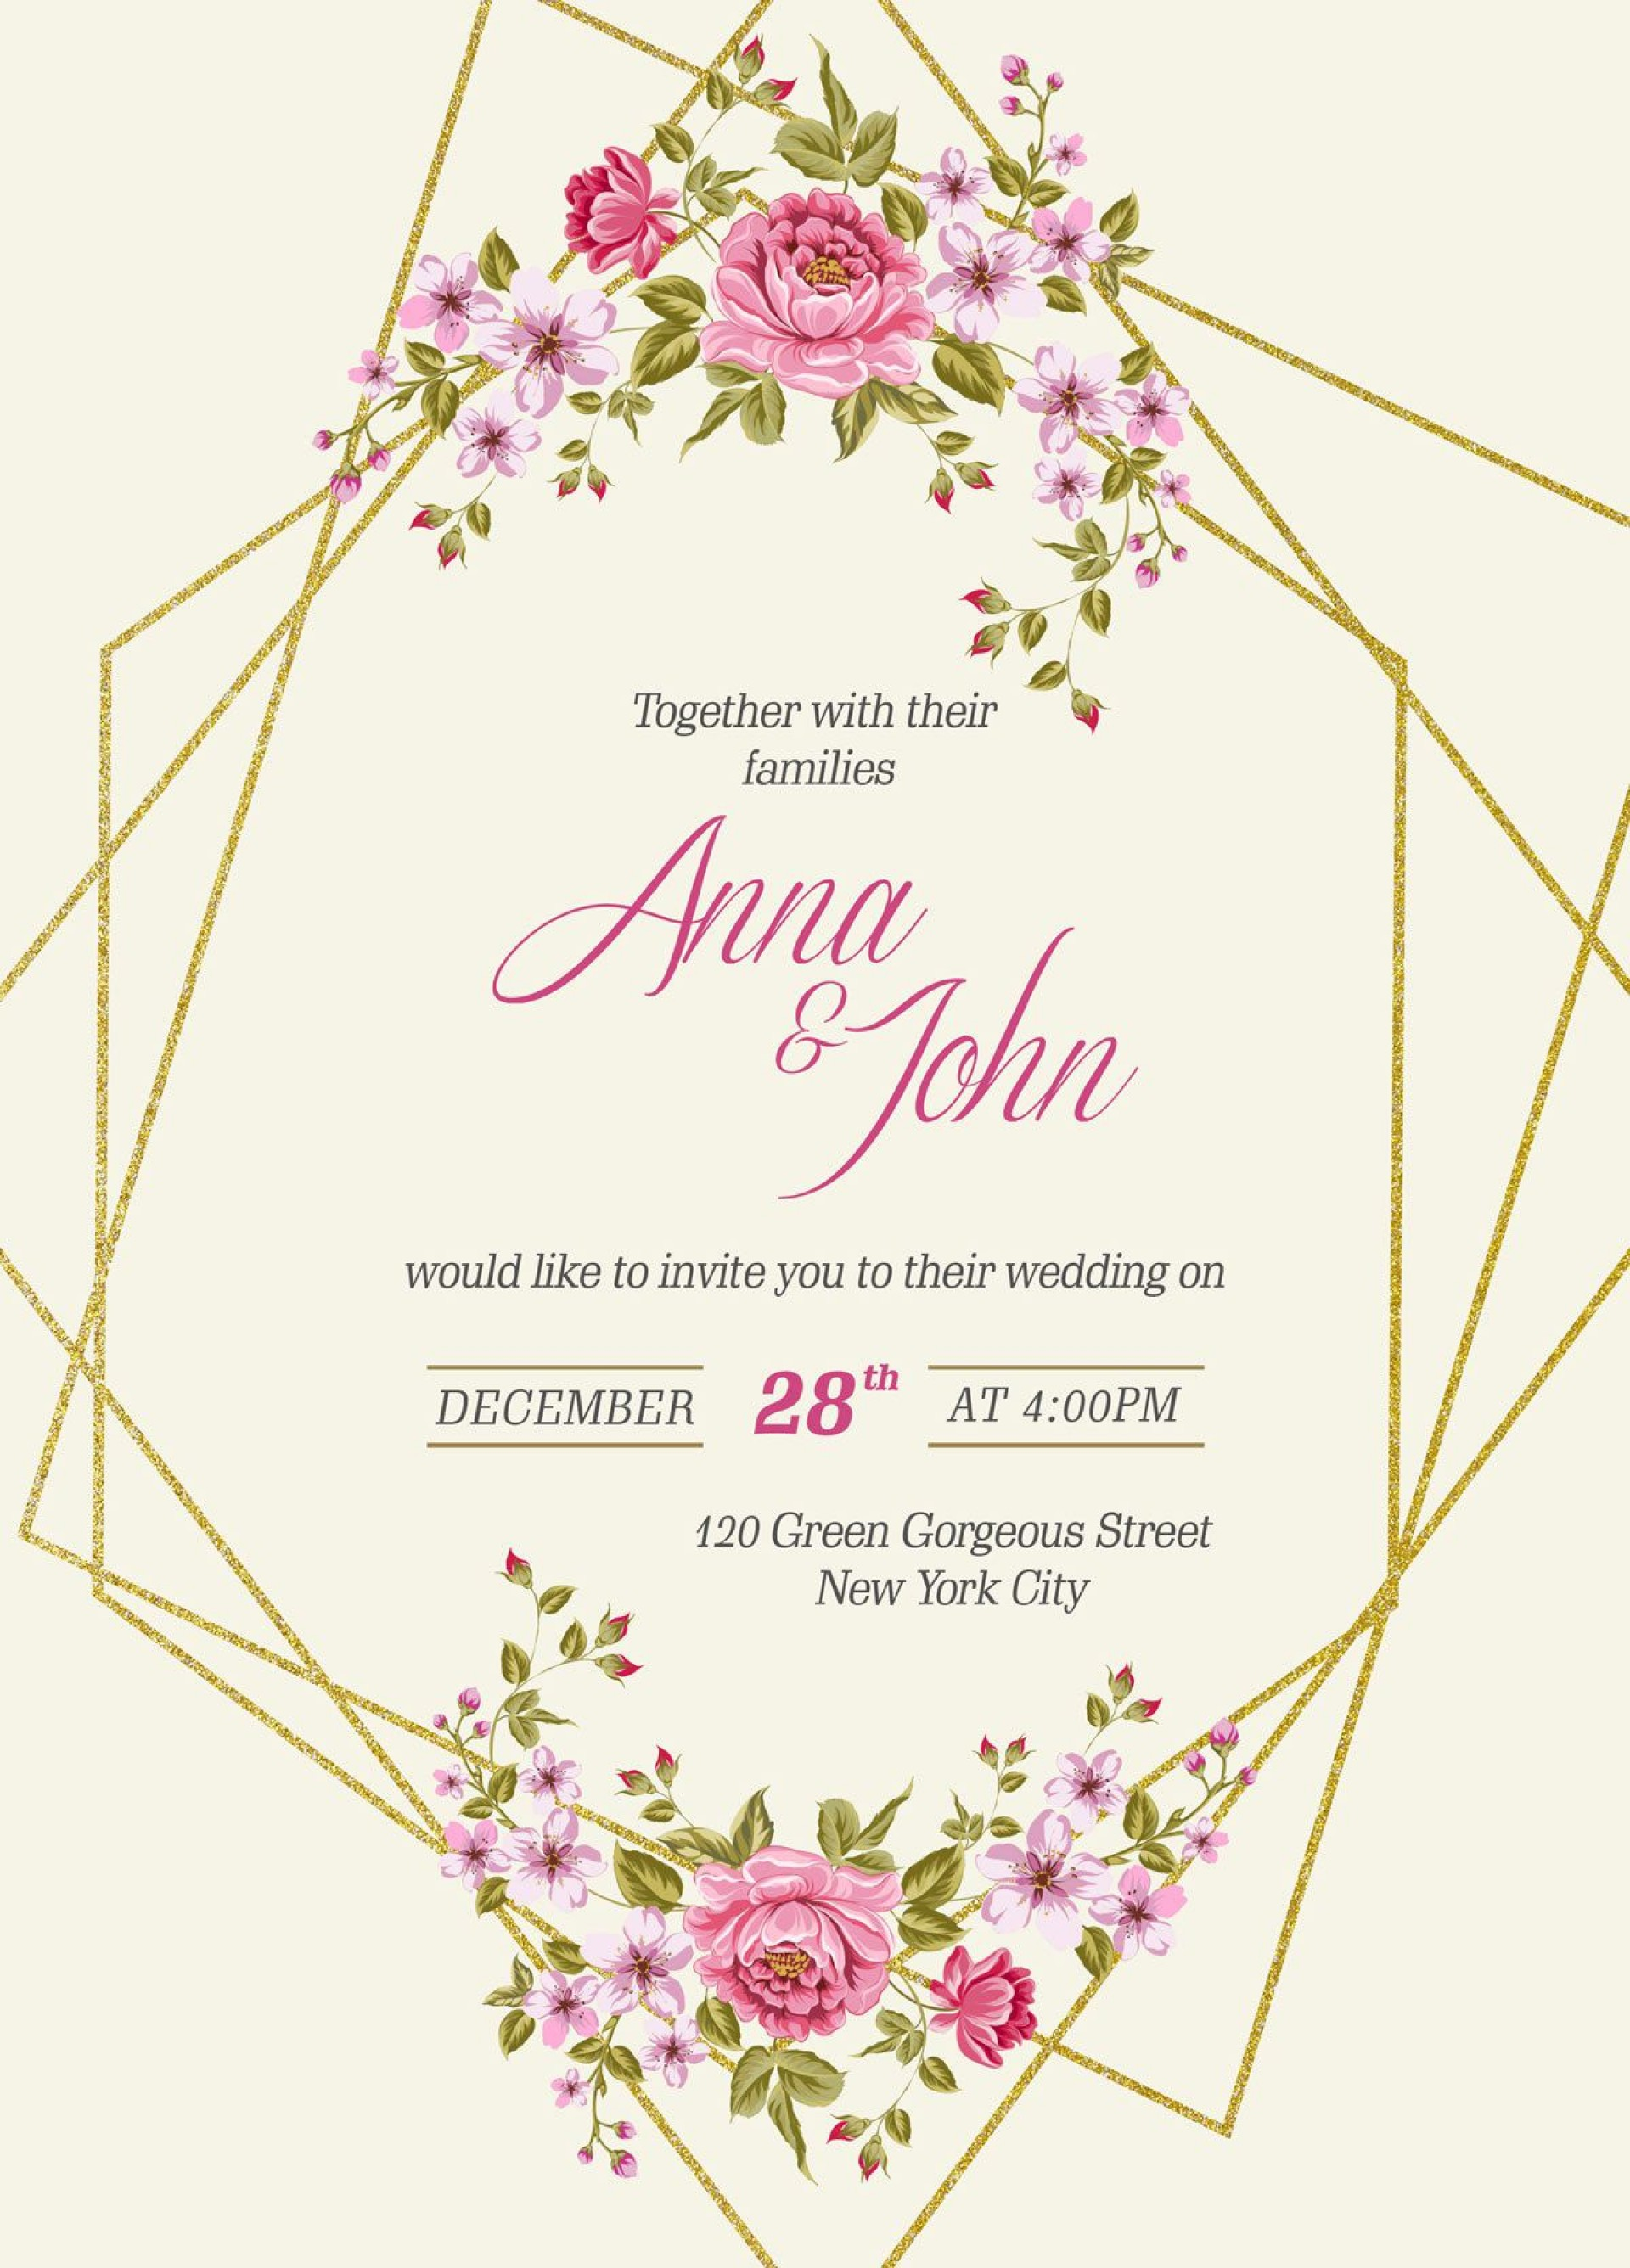 007 Outstanding Free Download Invitation Card Template Psd Image  Indian Wedding Birthday1920